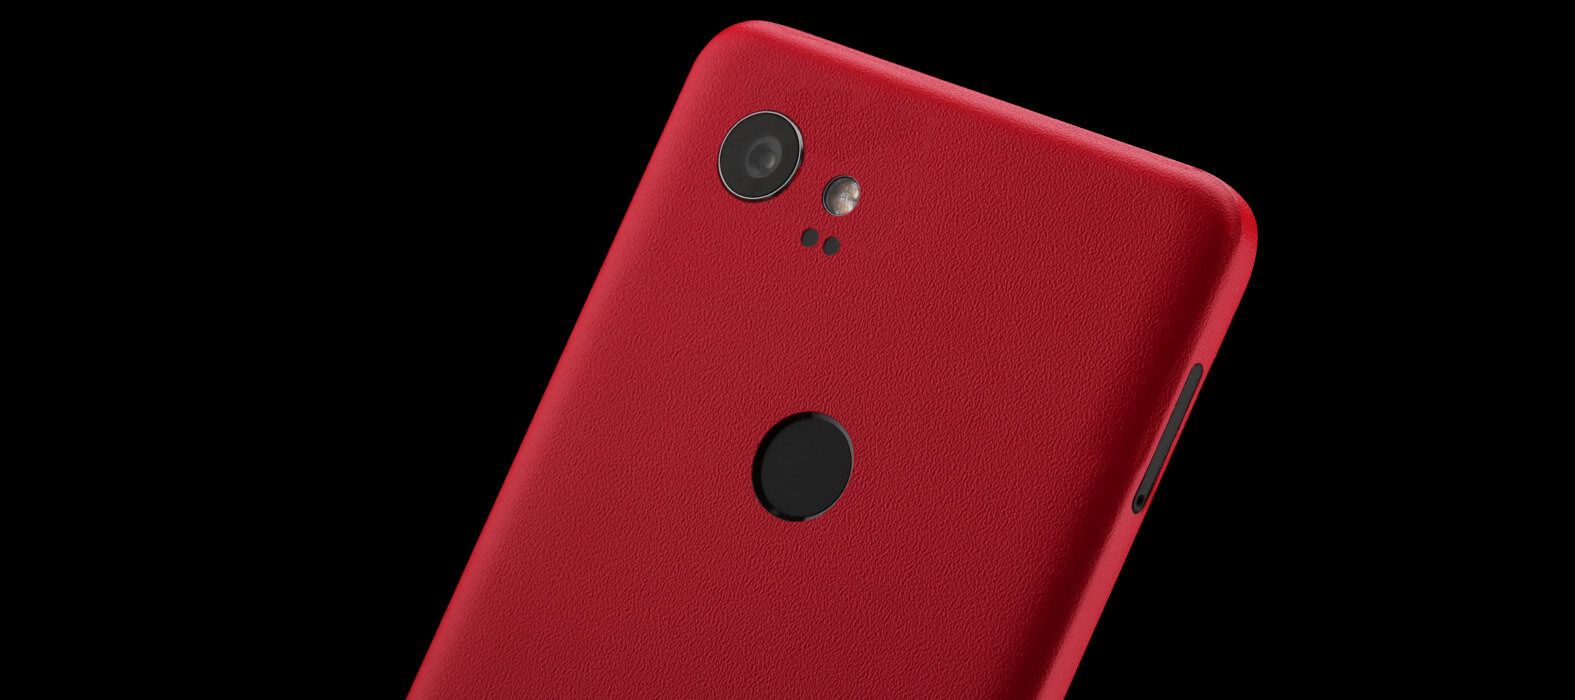 Pixel 2 XL Skins Sandstone Red Wraps & Decals